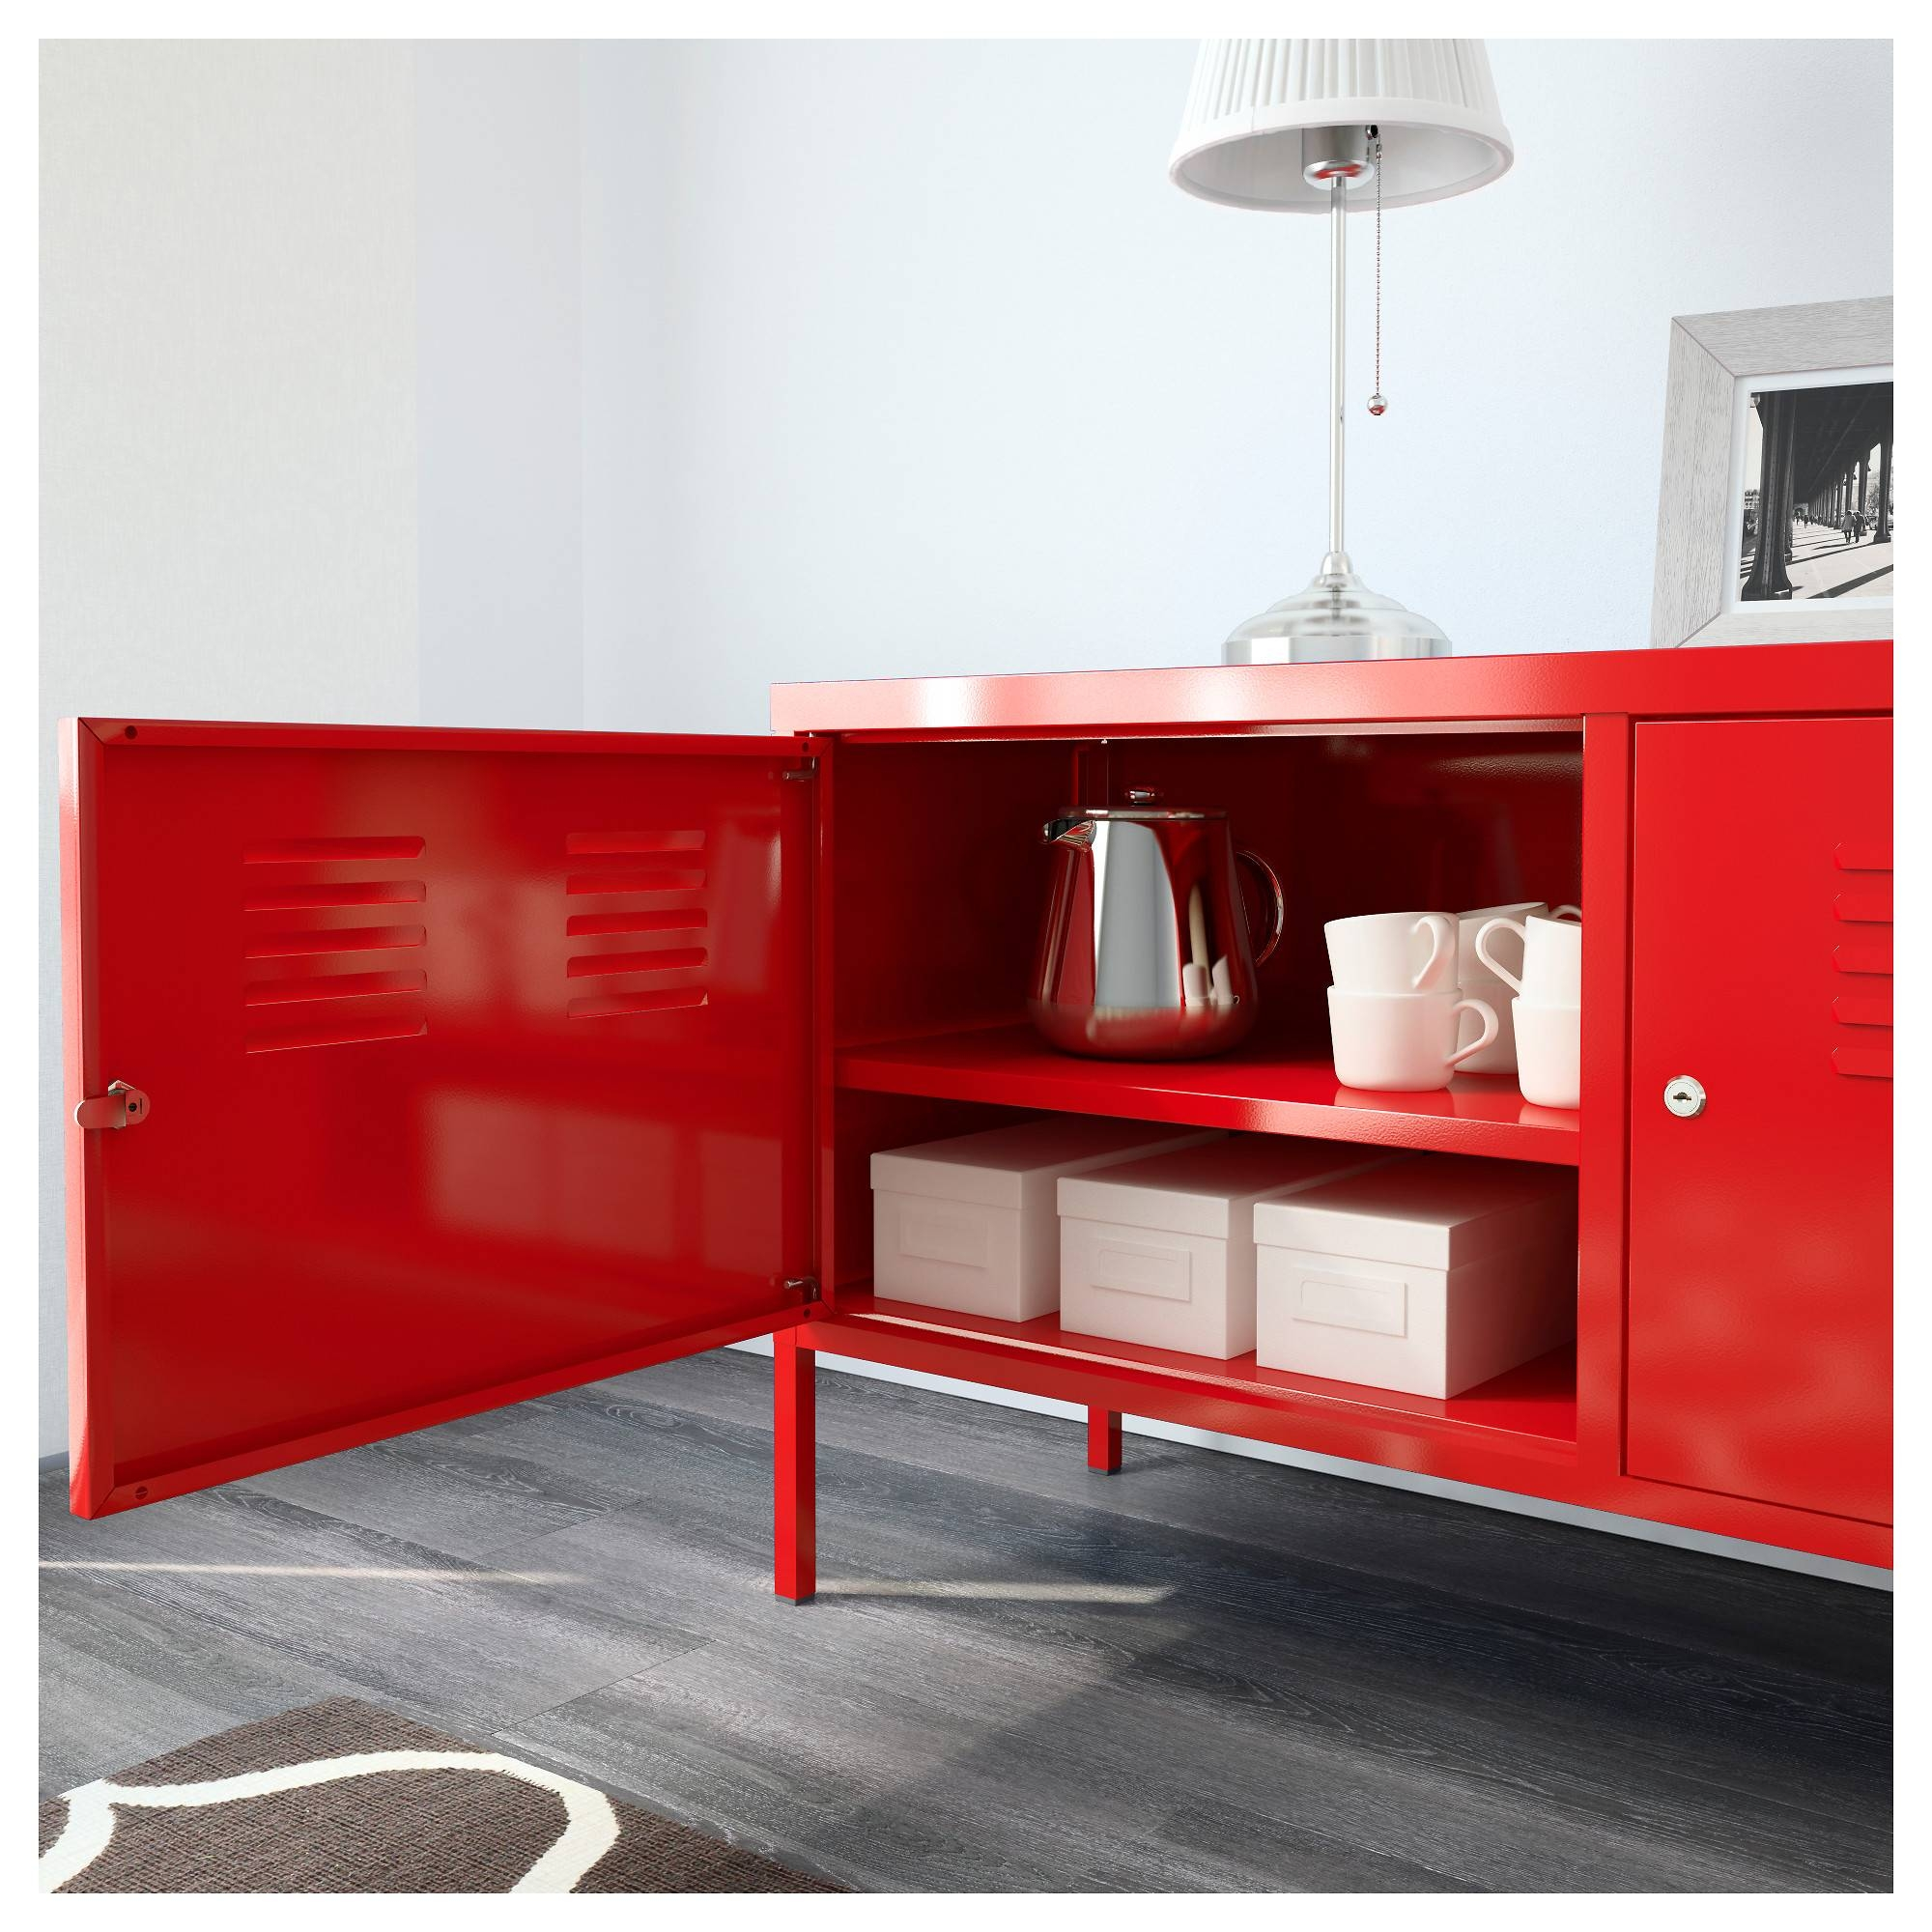 Ikea Ps Cabinet – Red – Ikea Regarding Latest Ikea Red Sideboards (#9 of 15)